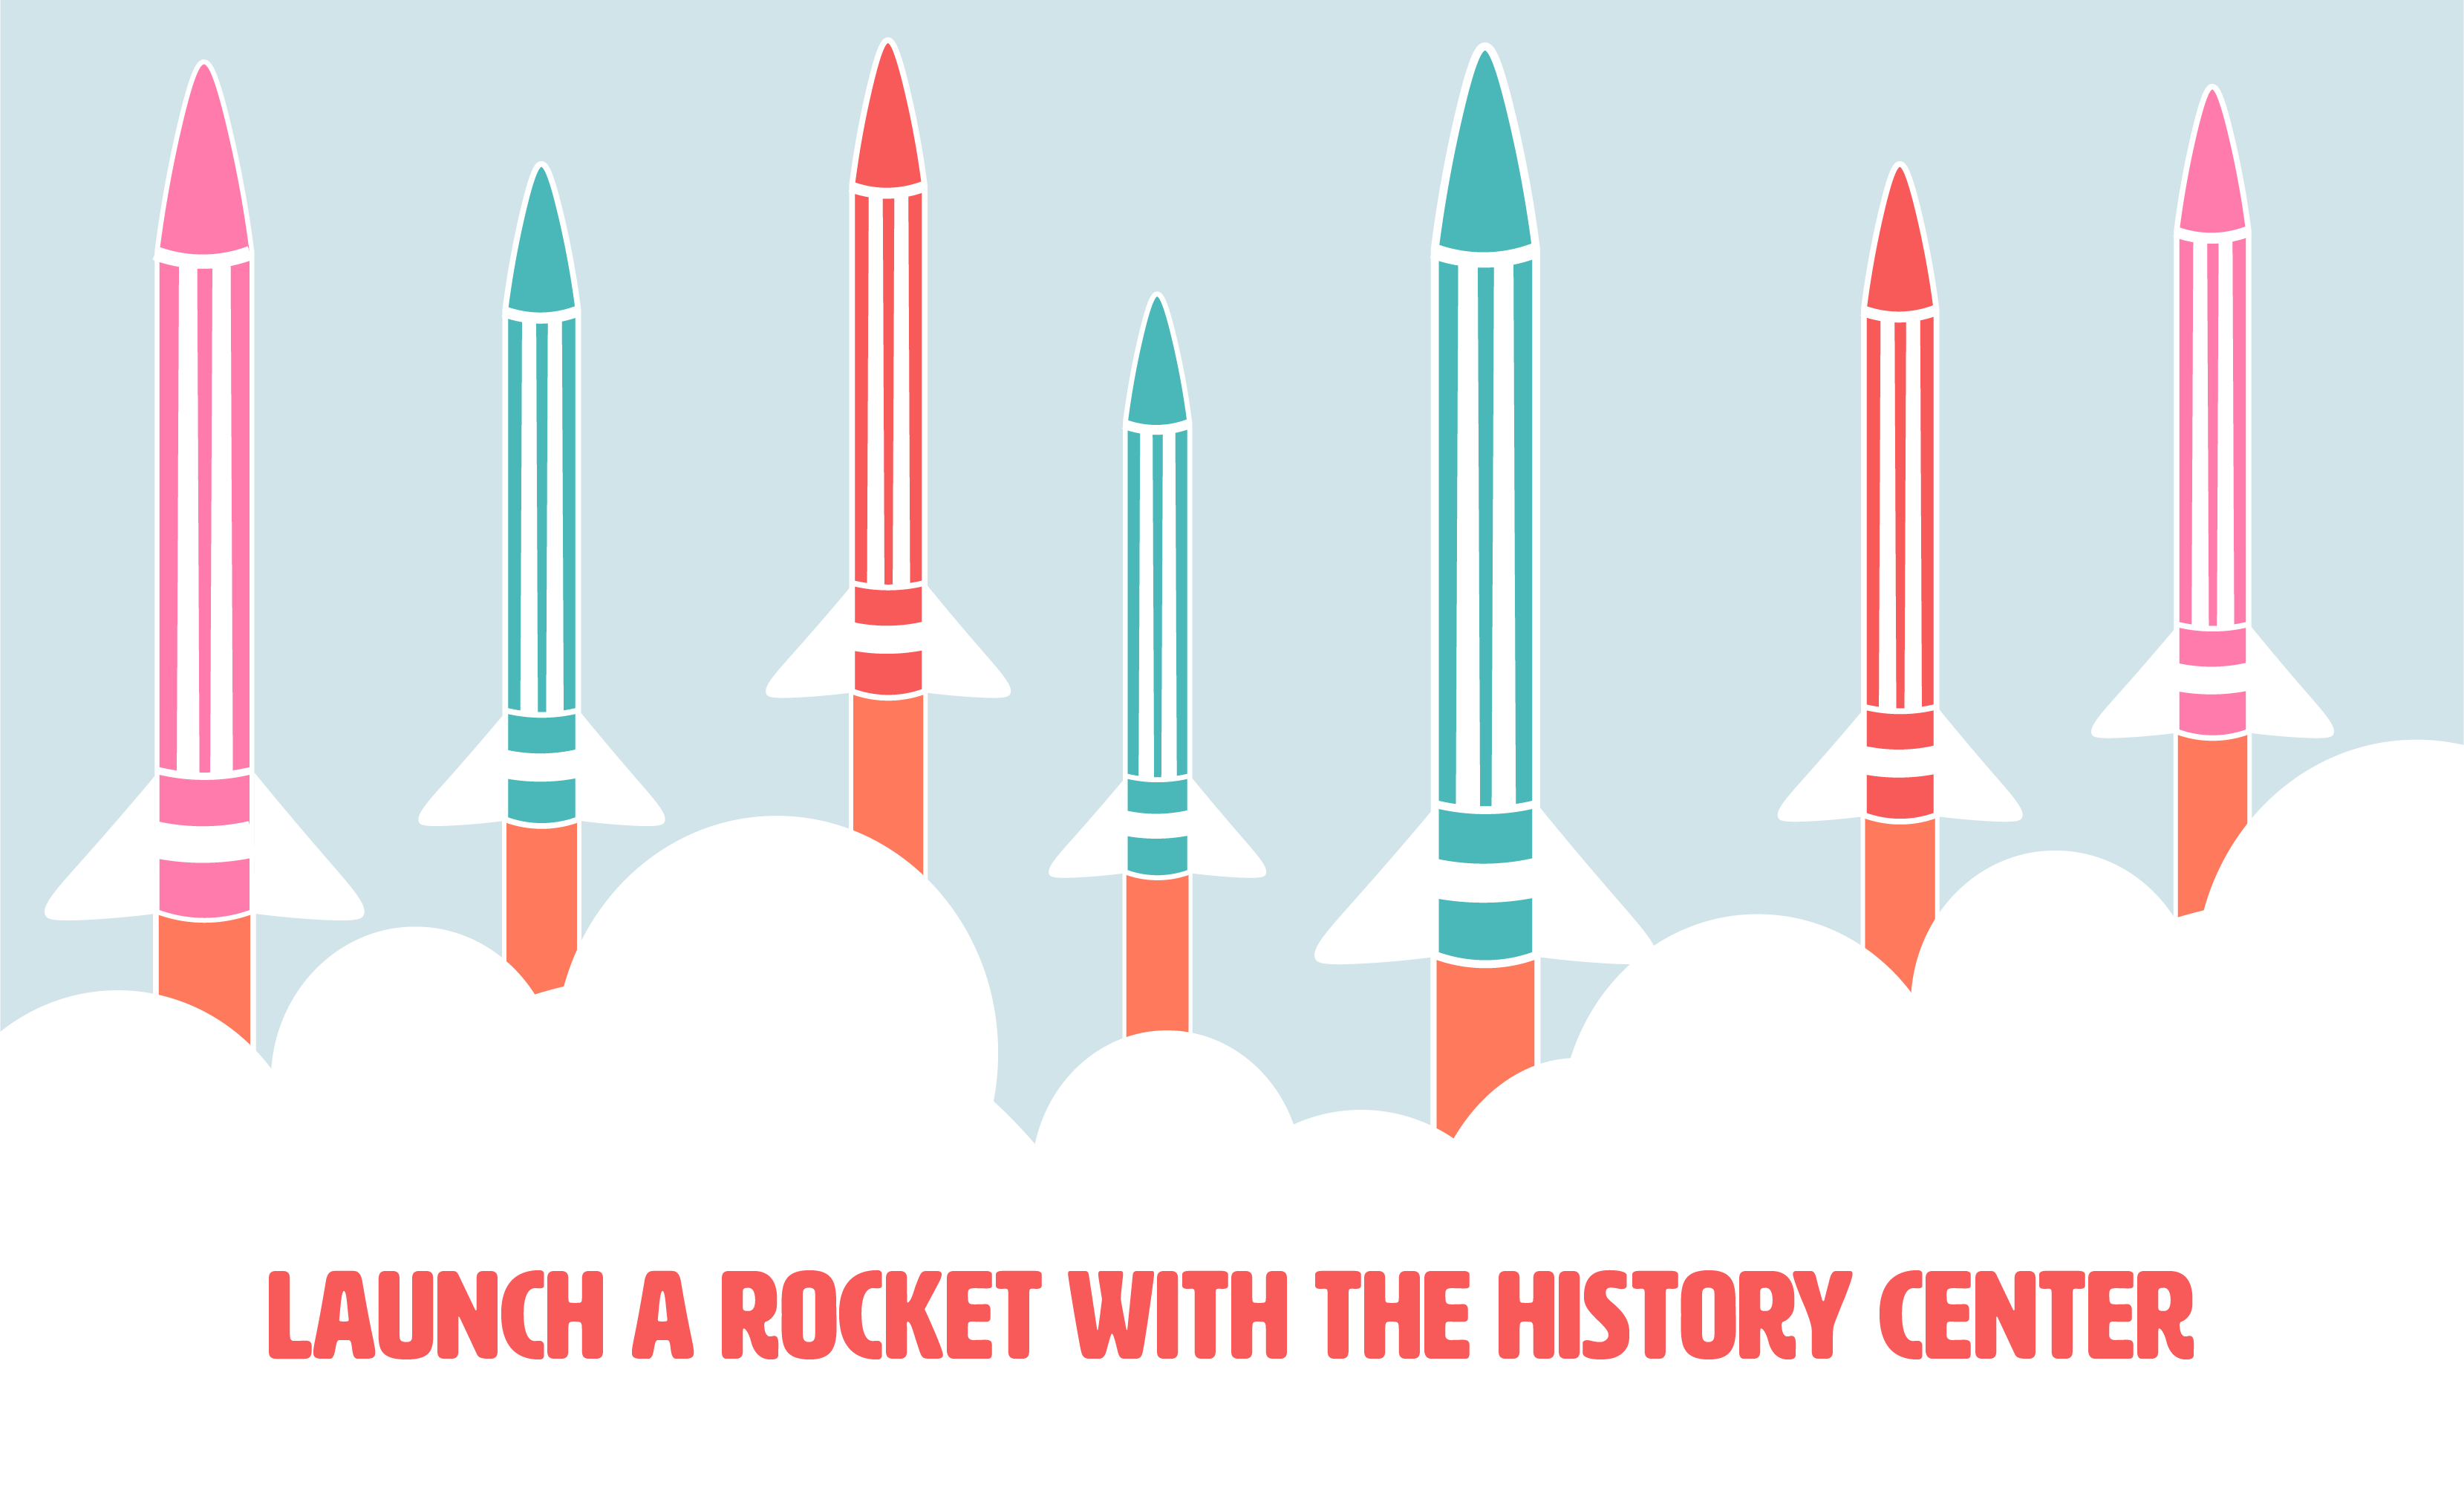 Launch a rocket with the History Center